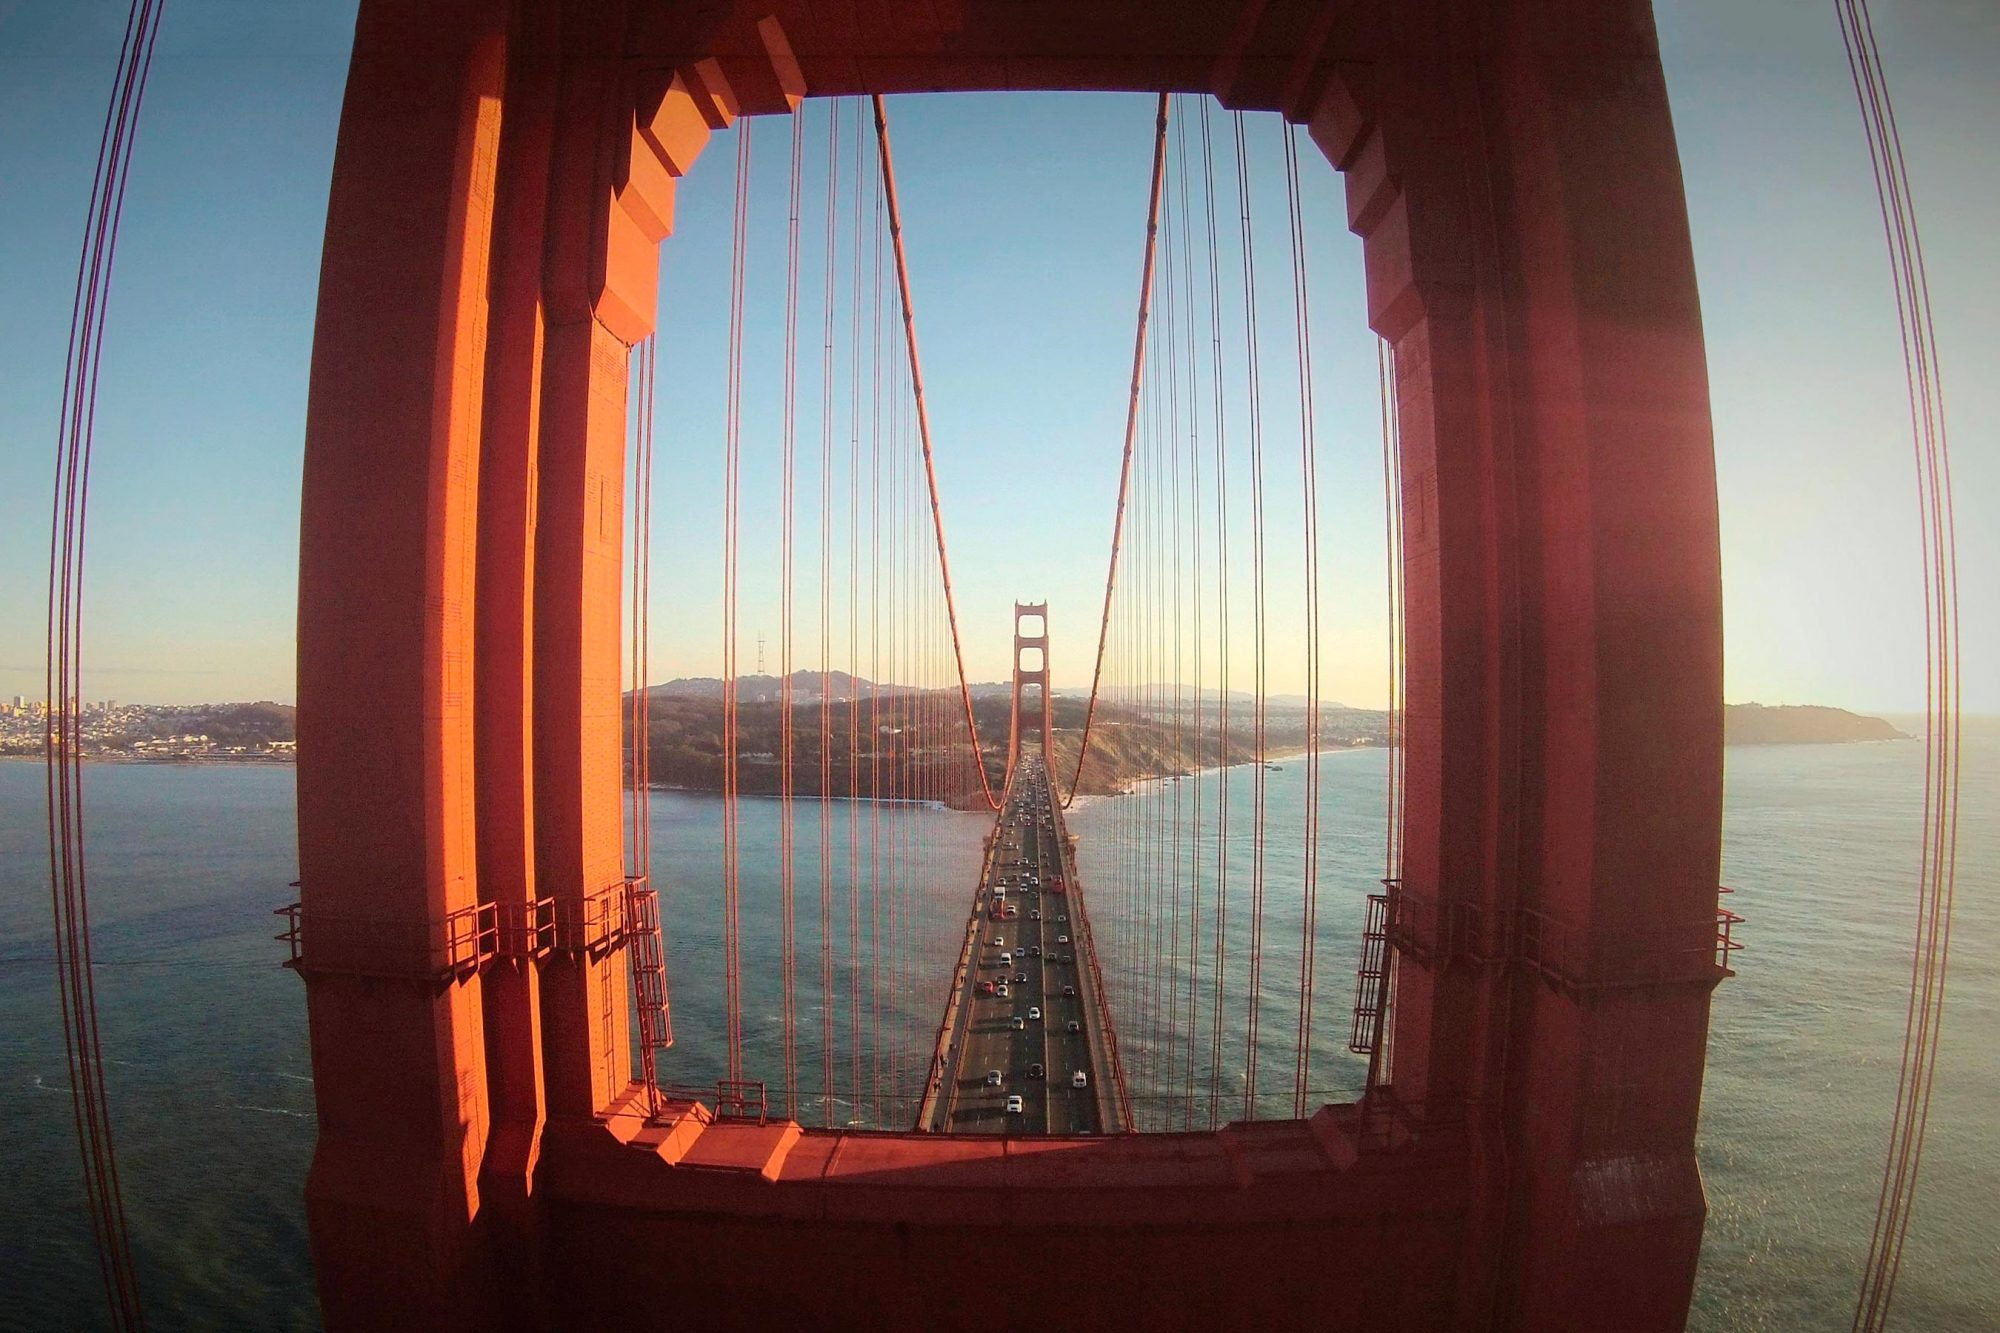 The Golden Gate Bridge, San Francisco